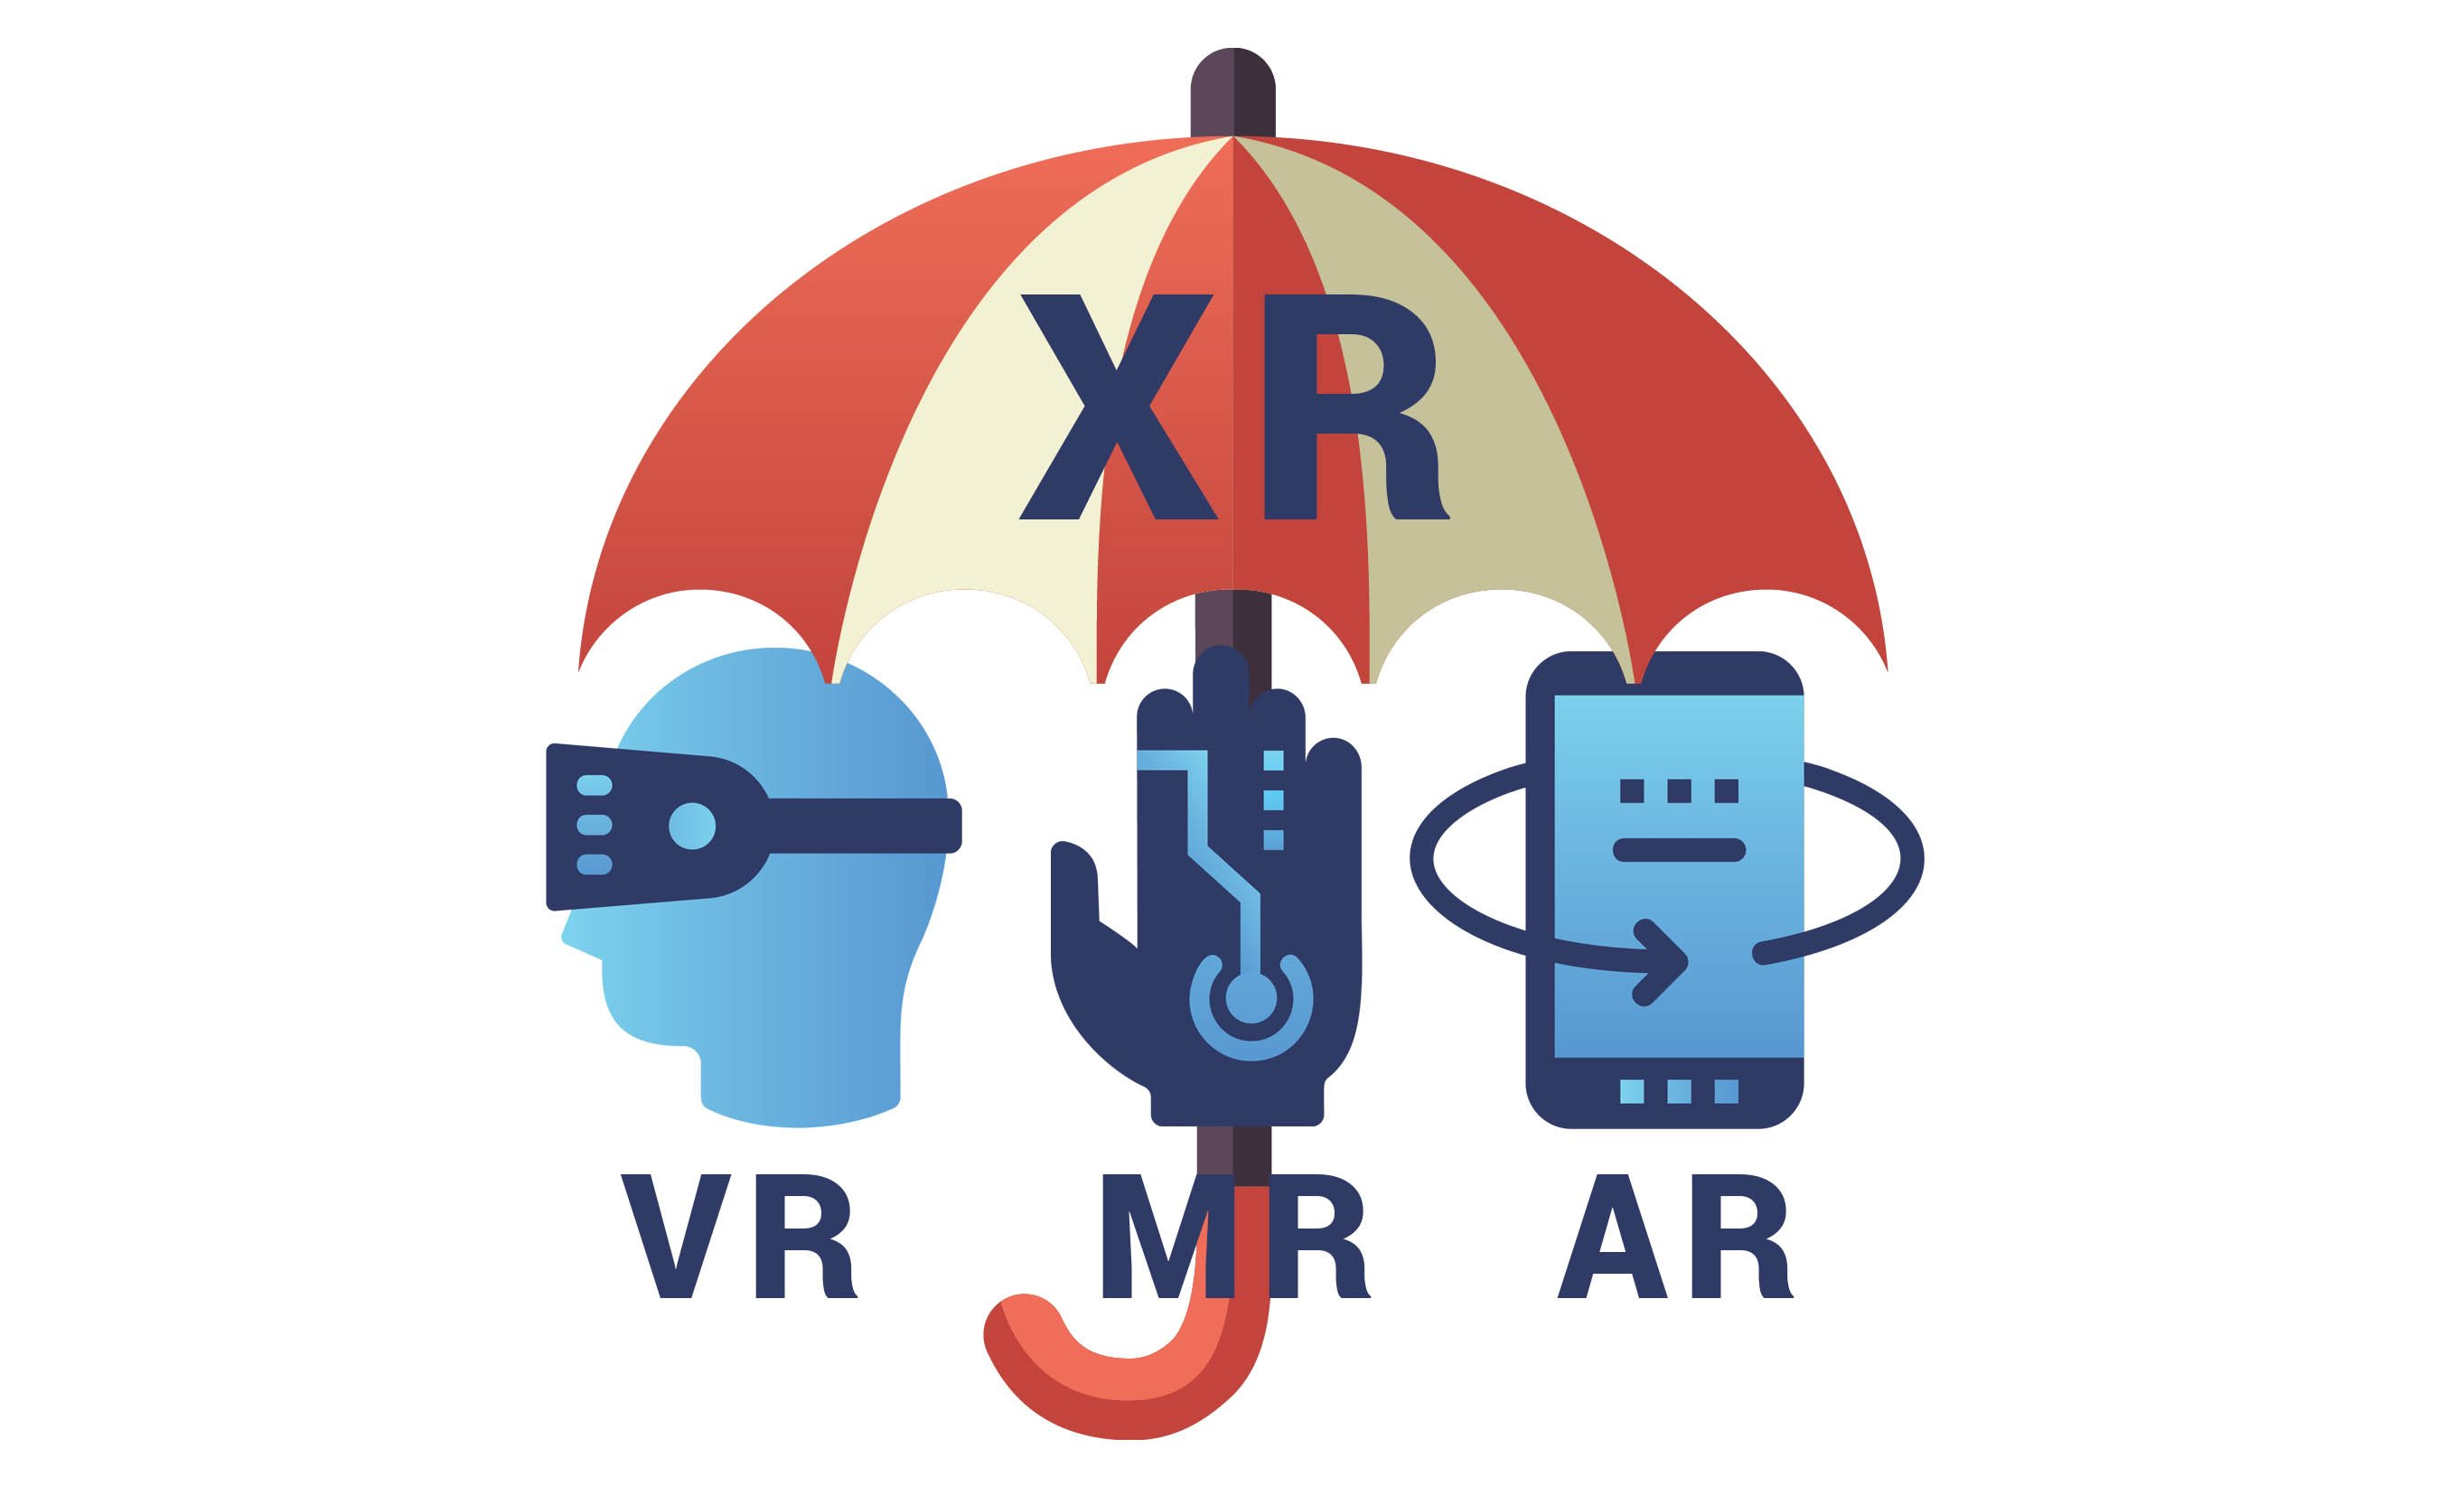 Culex XR VR MR AR